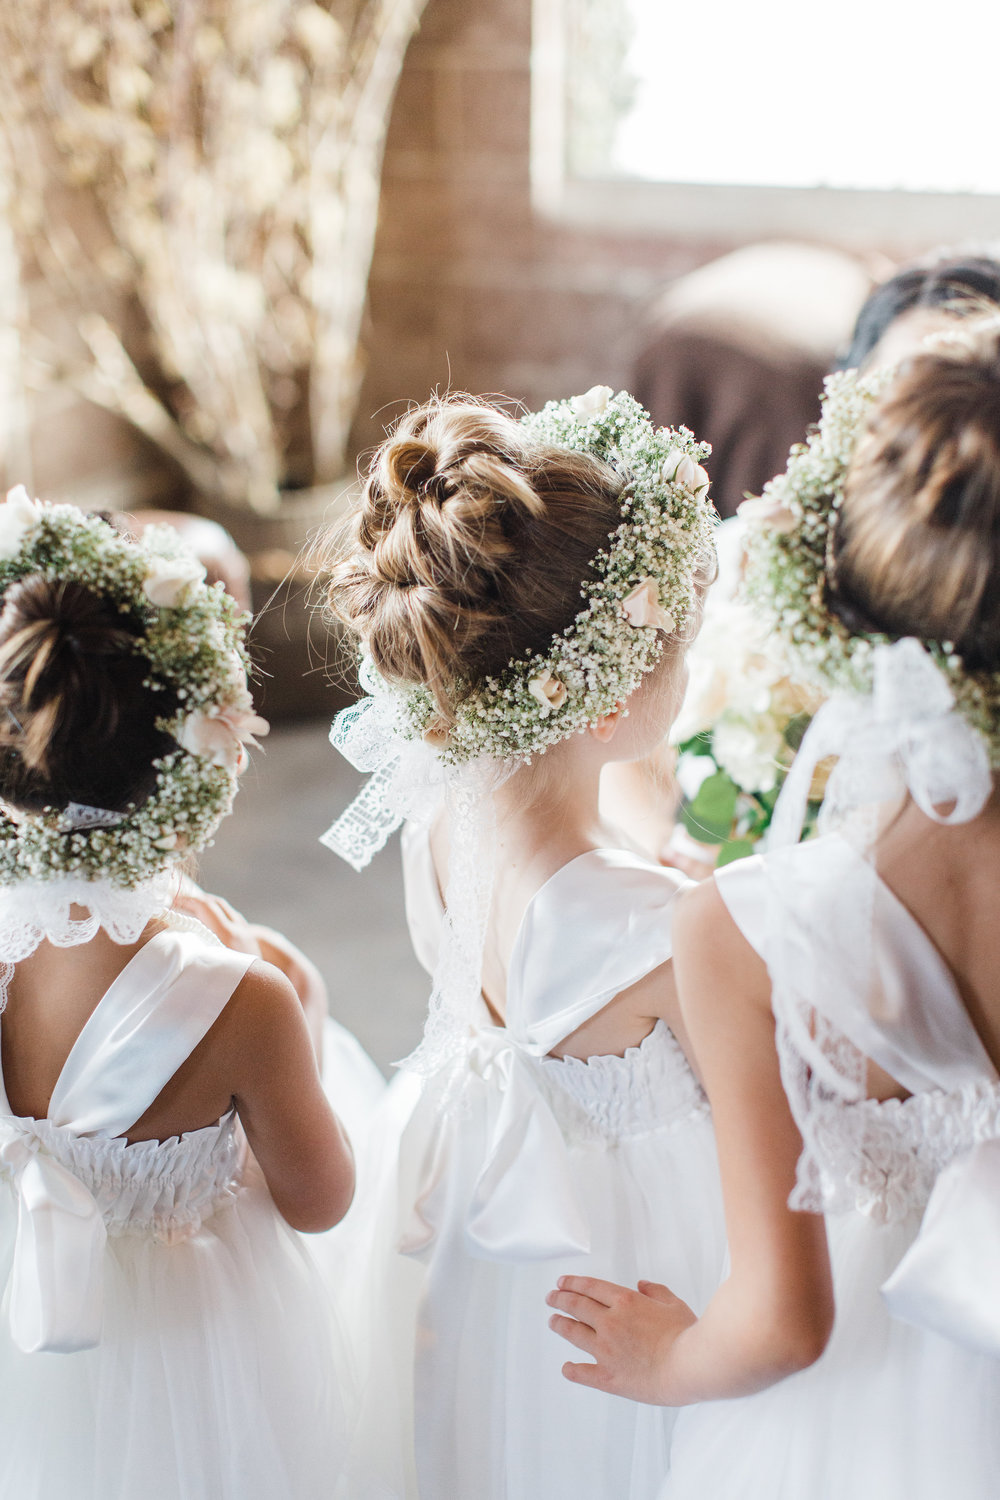 Smoky-Hollow-Studios-Wedding-El-Segundo-flower-girls.jpg